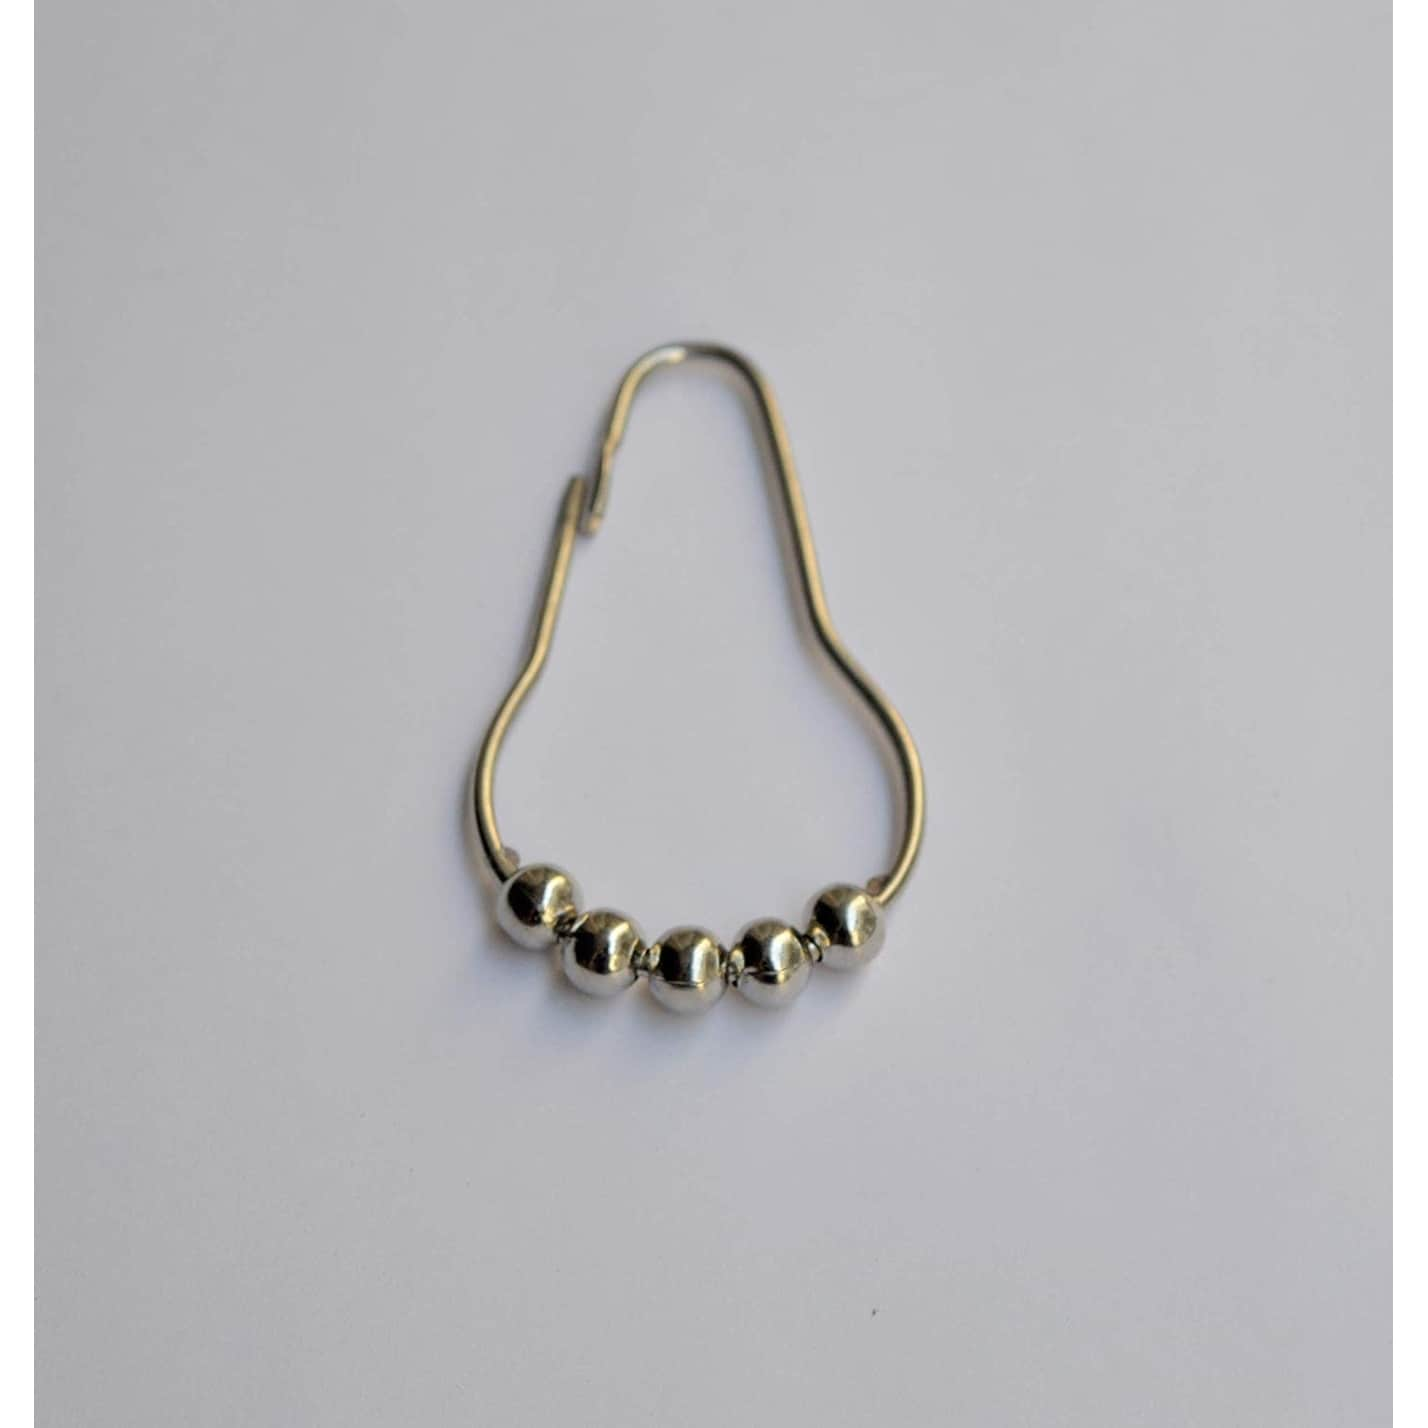 A1hc Stainless Steel Easy To Install Shower Curtain Rings Hooks 12 Piece Set 7 X 1 9 X 0 2 Nickel